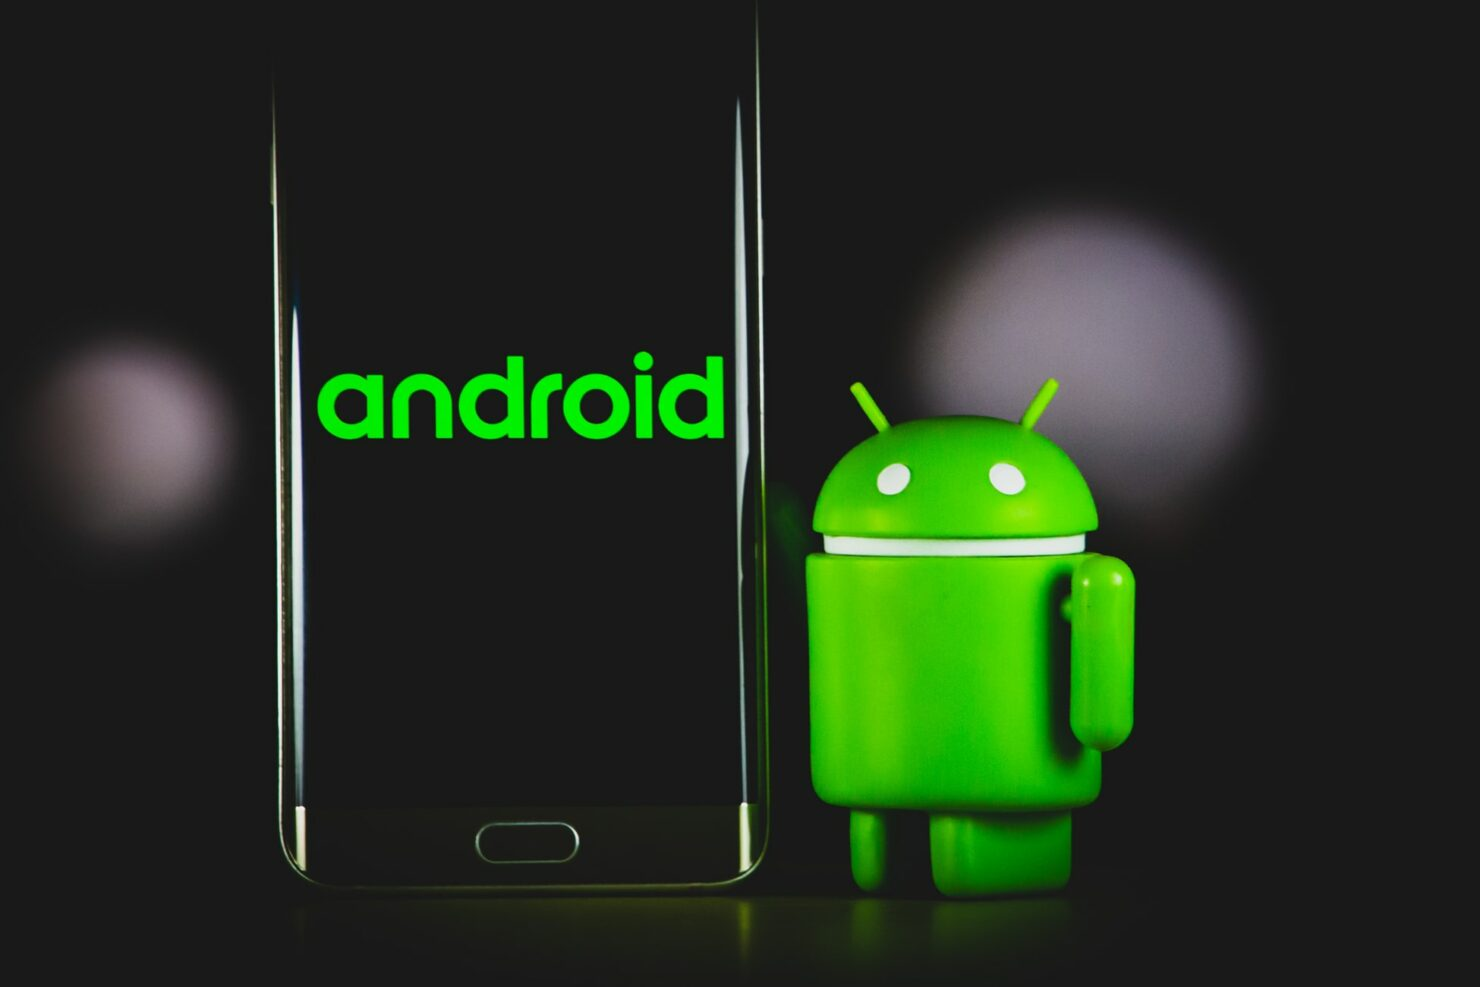 Google Android 13 - Details You Should KnowGoogle Android 13 - Details You Should Know